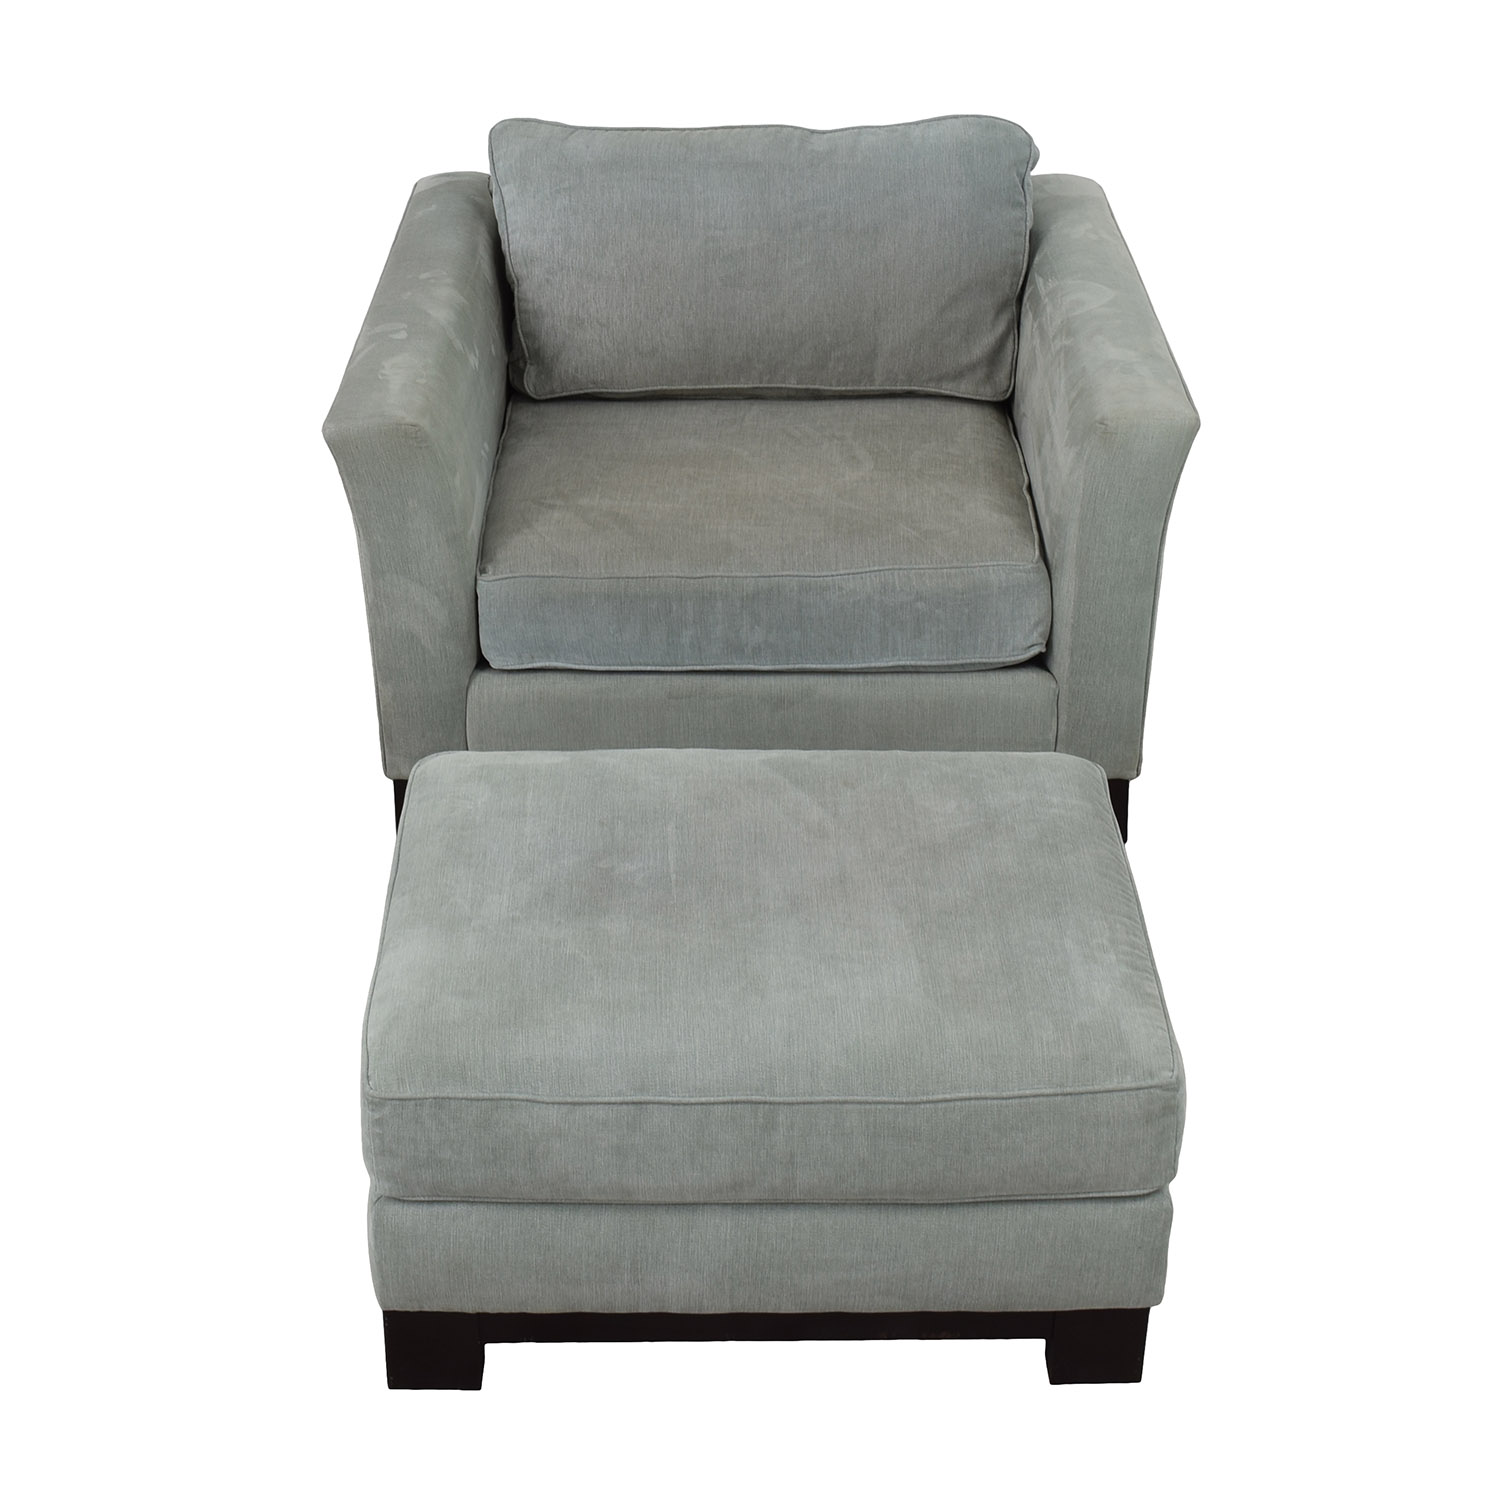 Jonathan Louis Jonathan Louis Grey Accent Chair and Ottoman